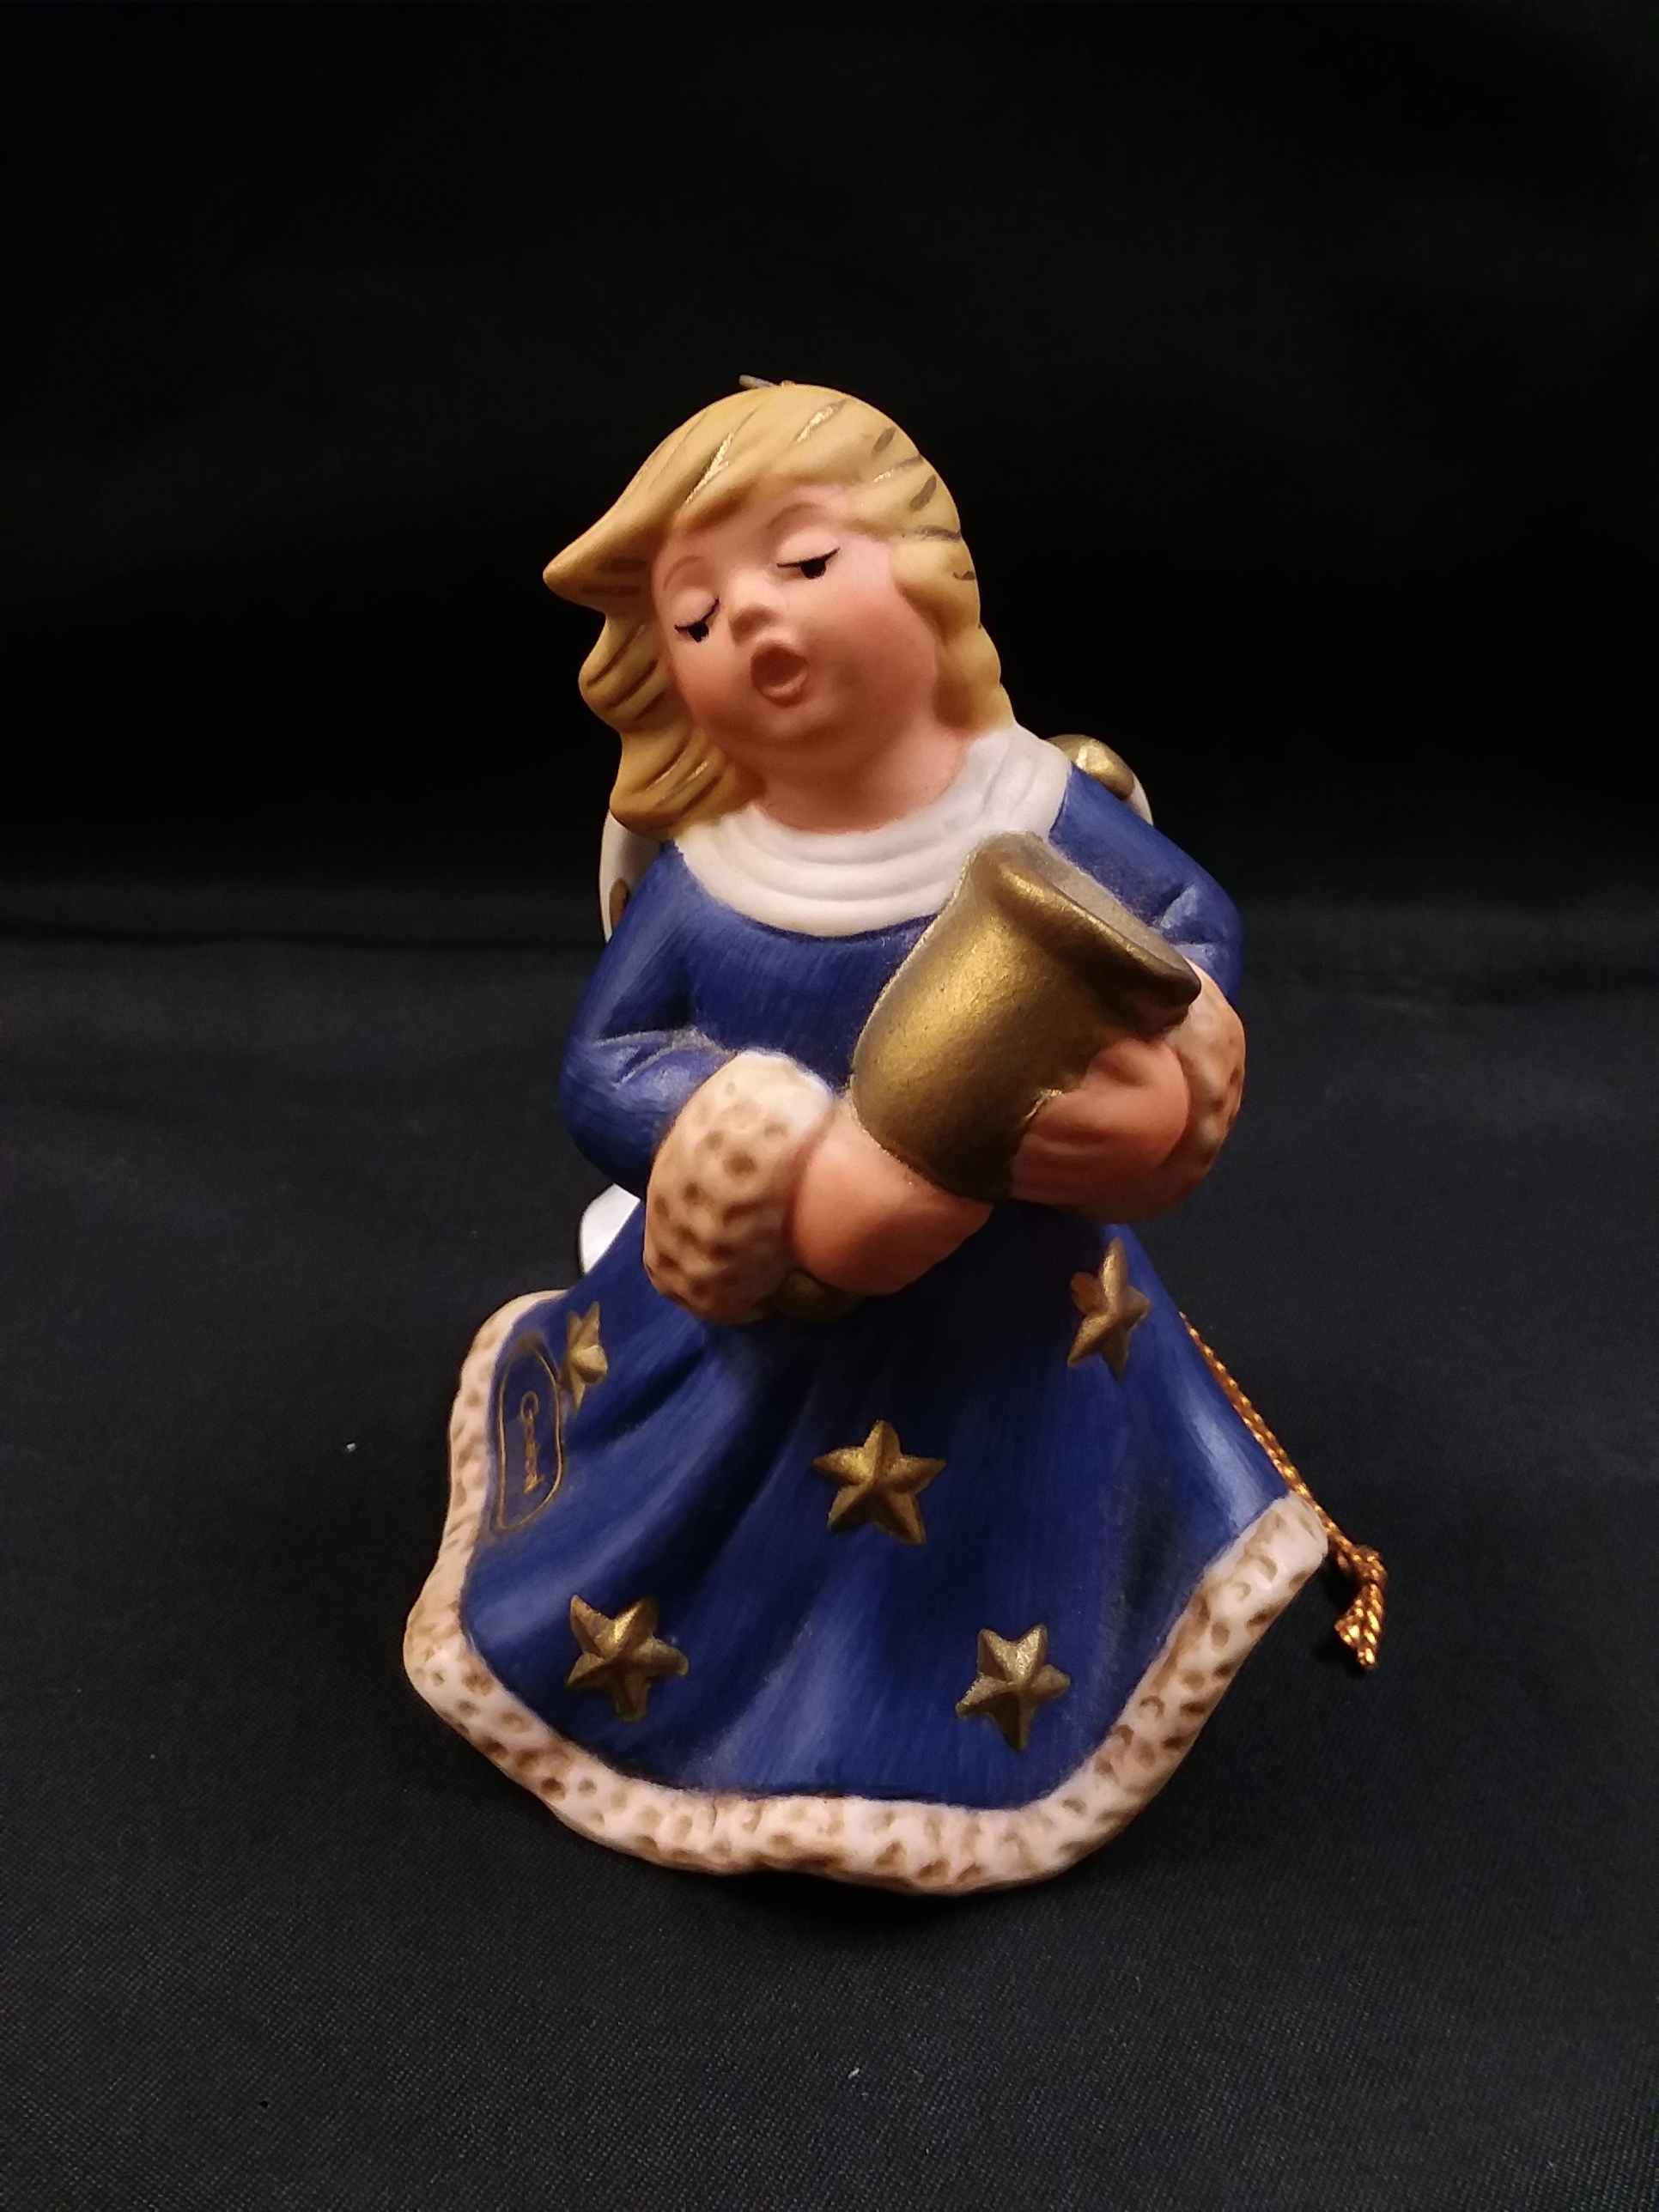 COLLECTIBLES: 1998 ANGEL BELL ORNAMENT - MISSING BELL